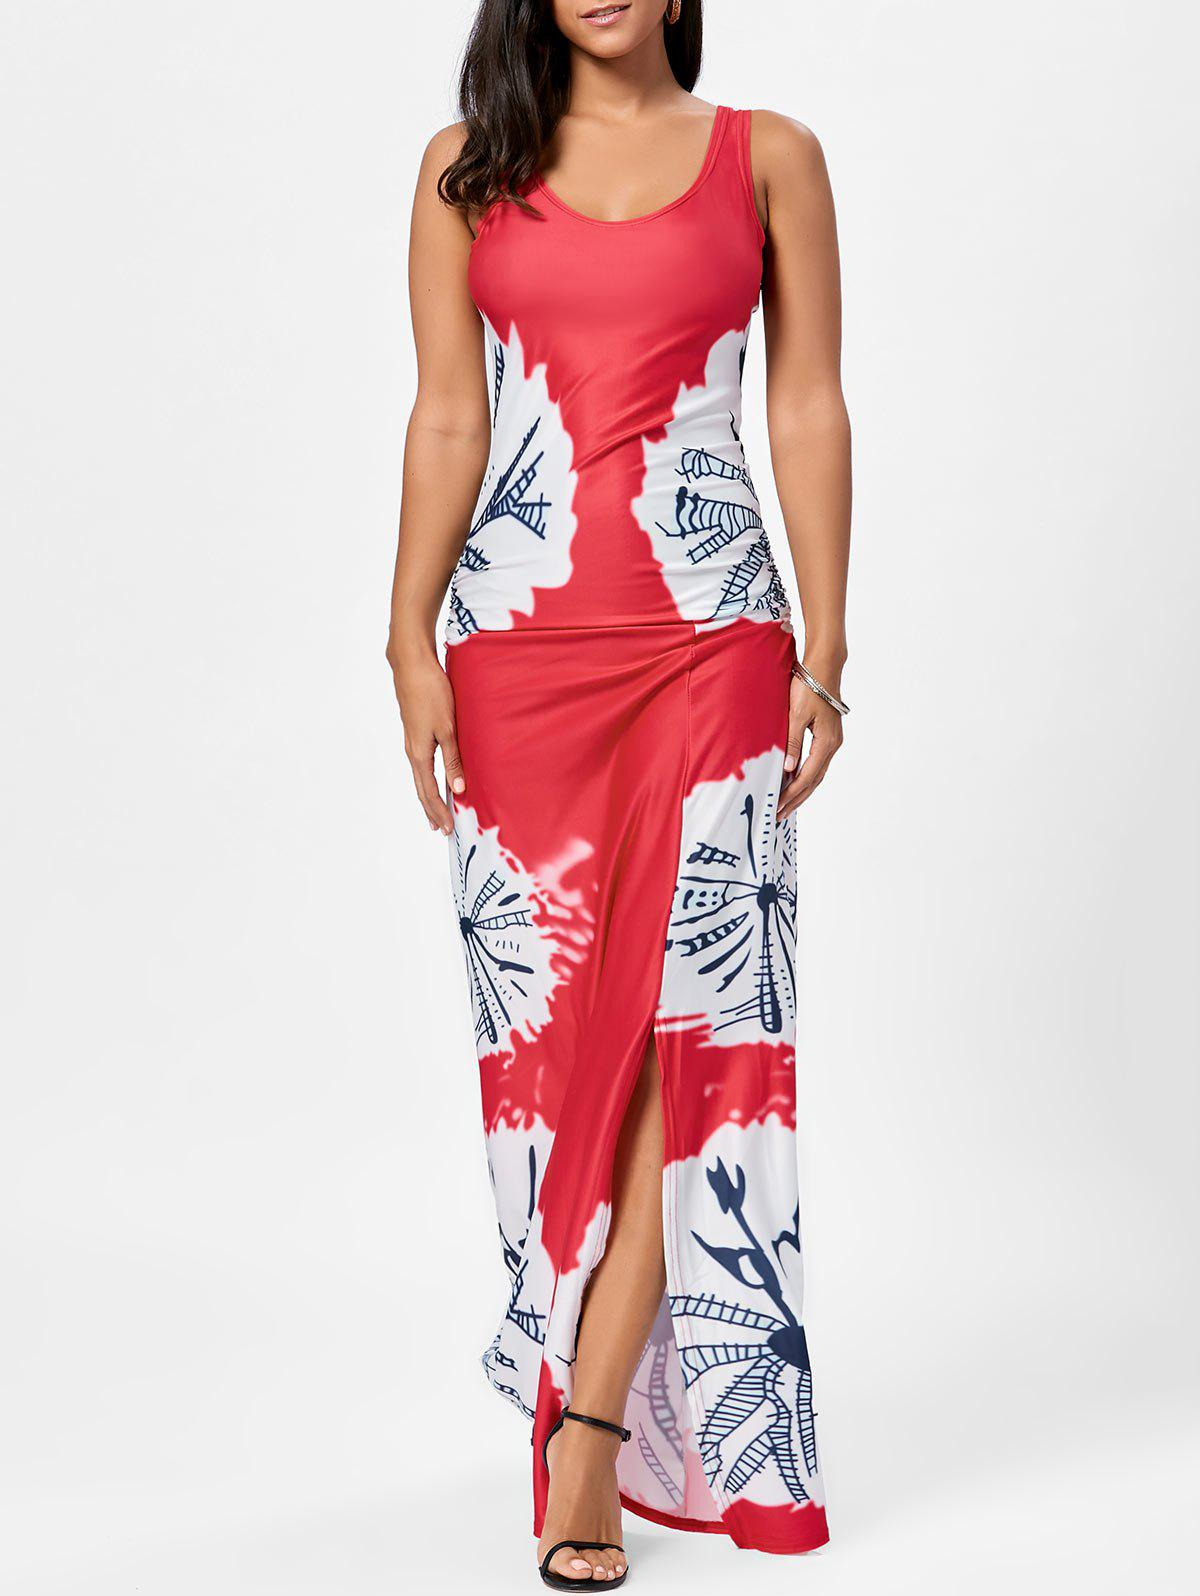 Long Slit Tie Dye Tank Dress - Rouge S